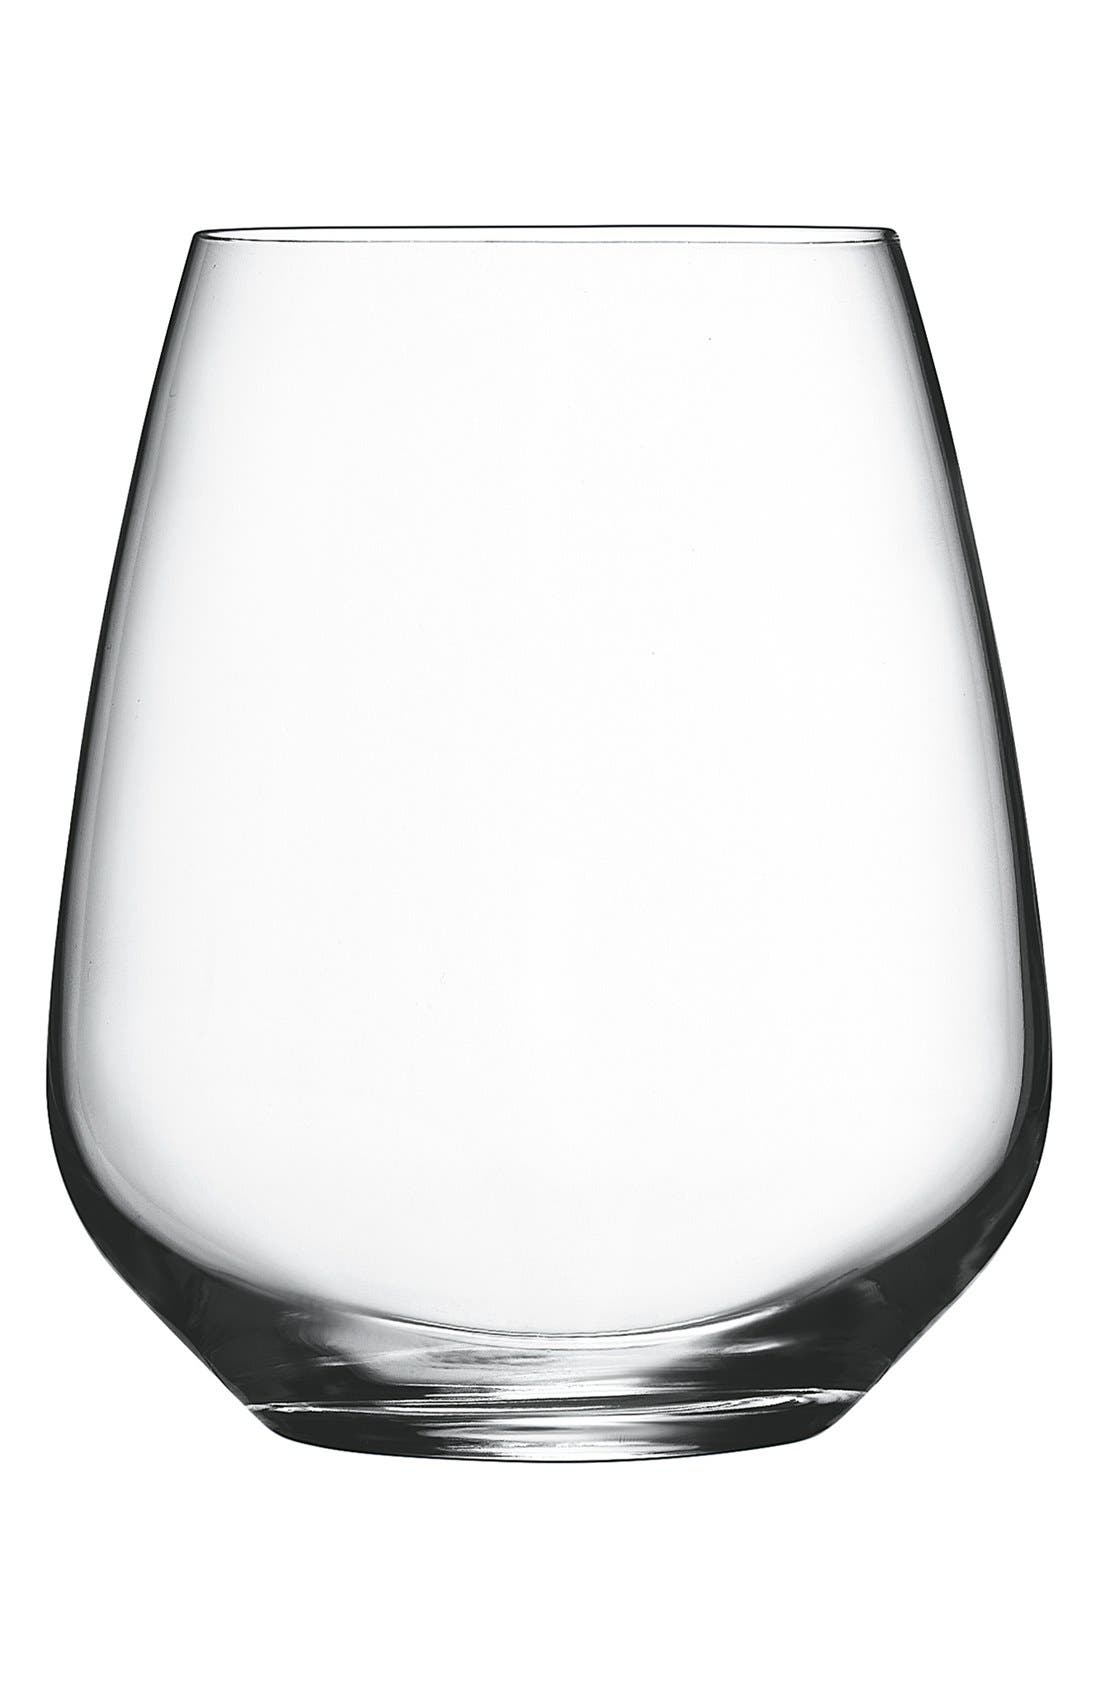 'Crescendo' Stemless Wine Glasses,                             Main thumbnail 1, color,                             CLEAR